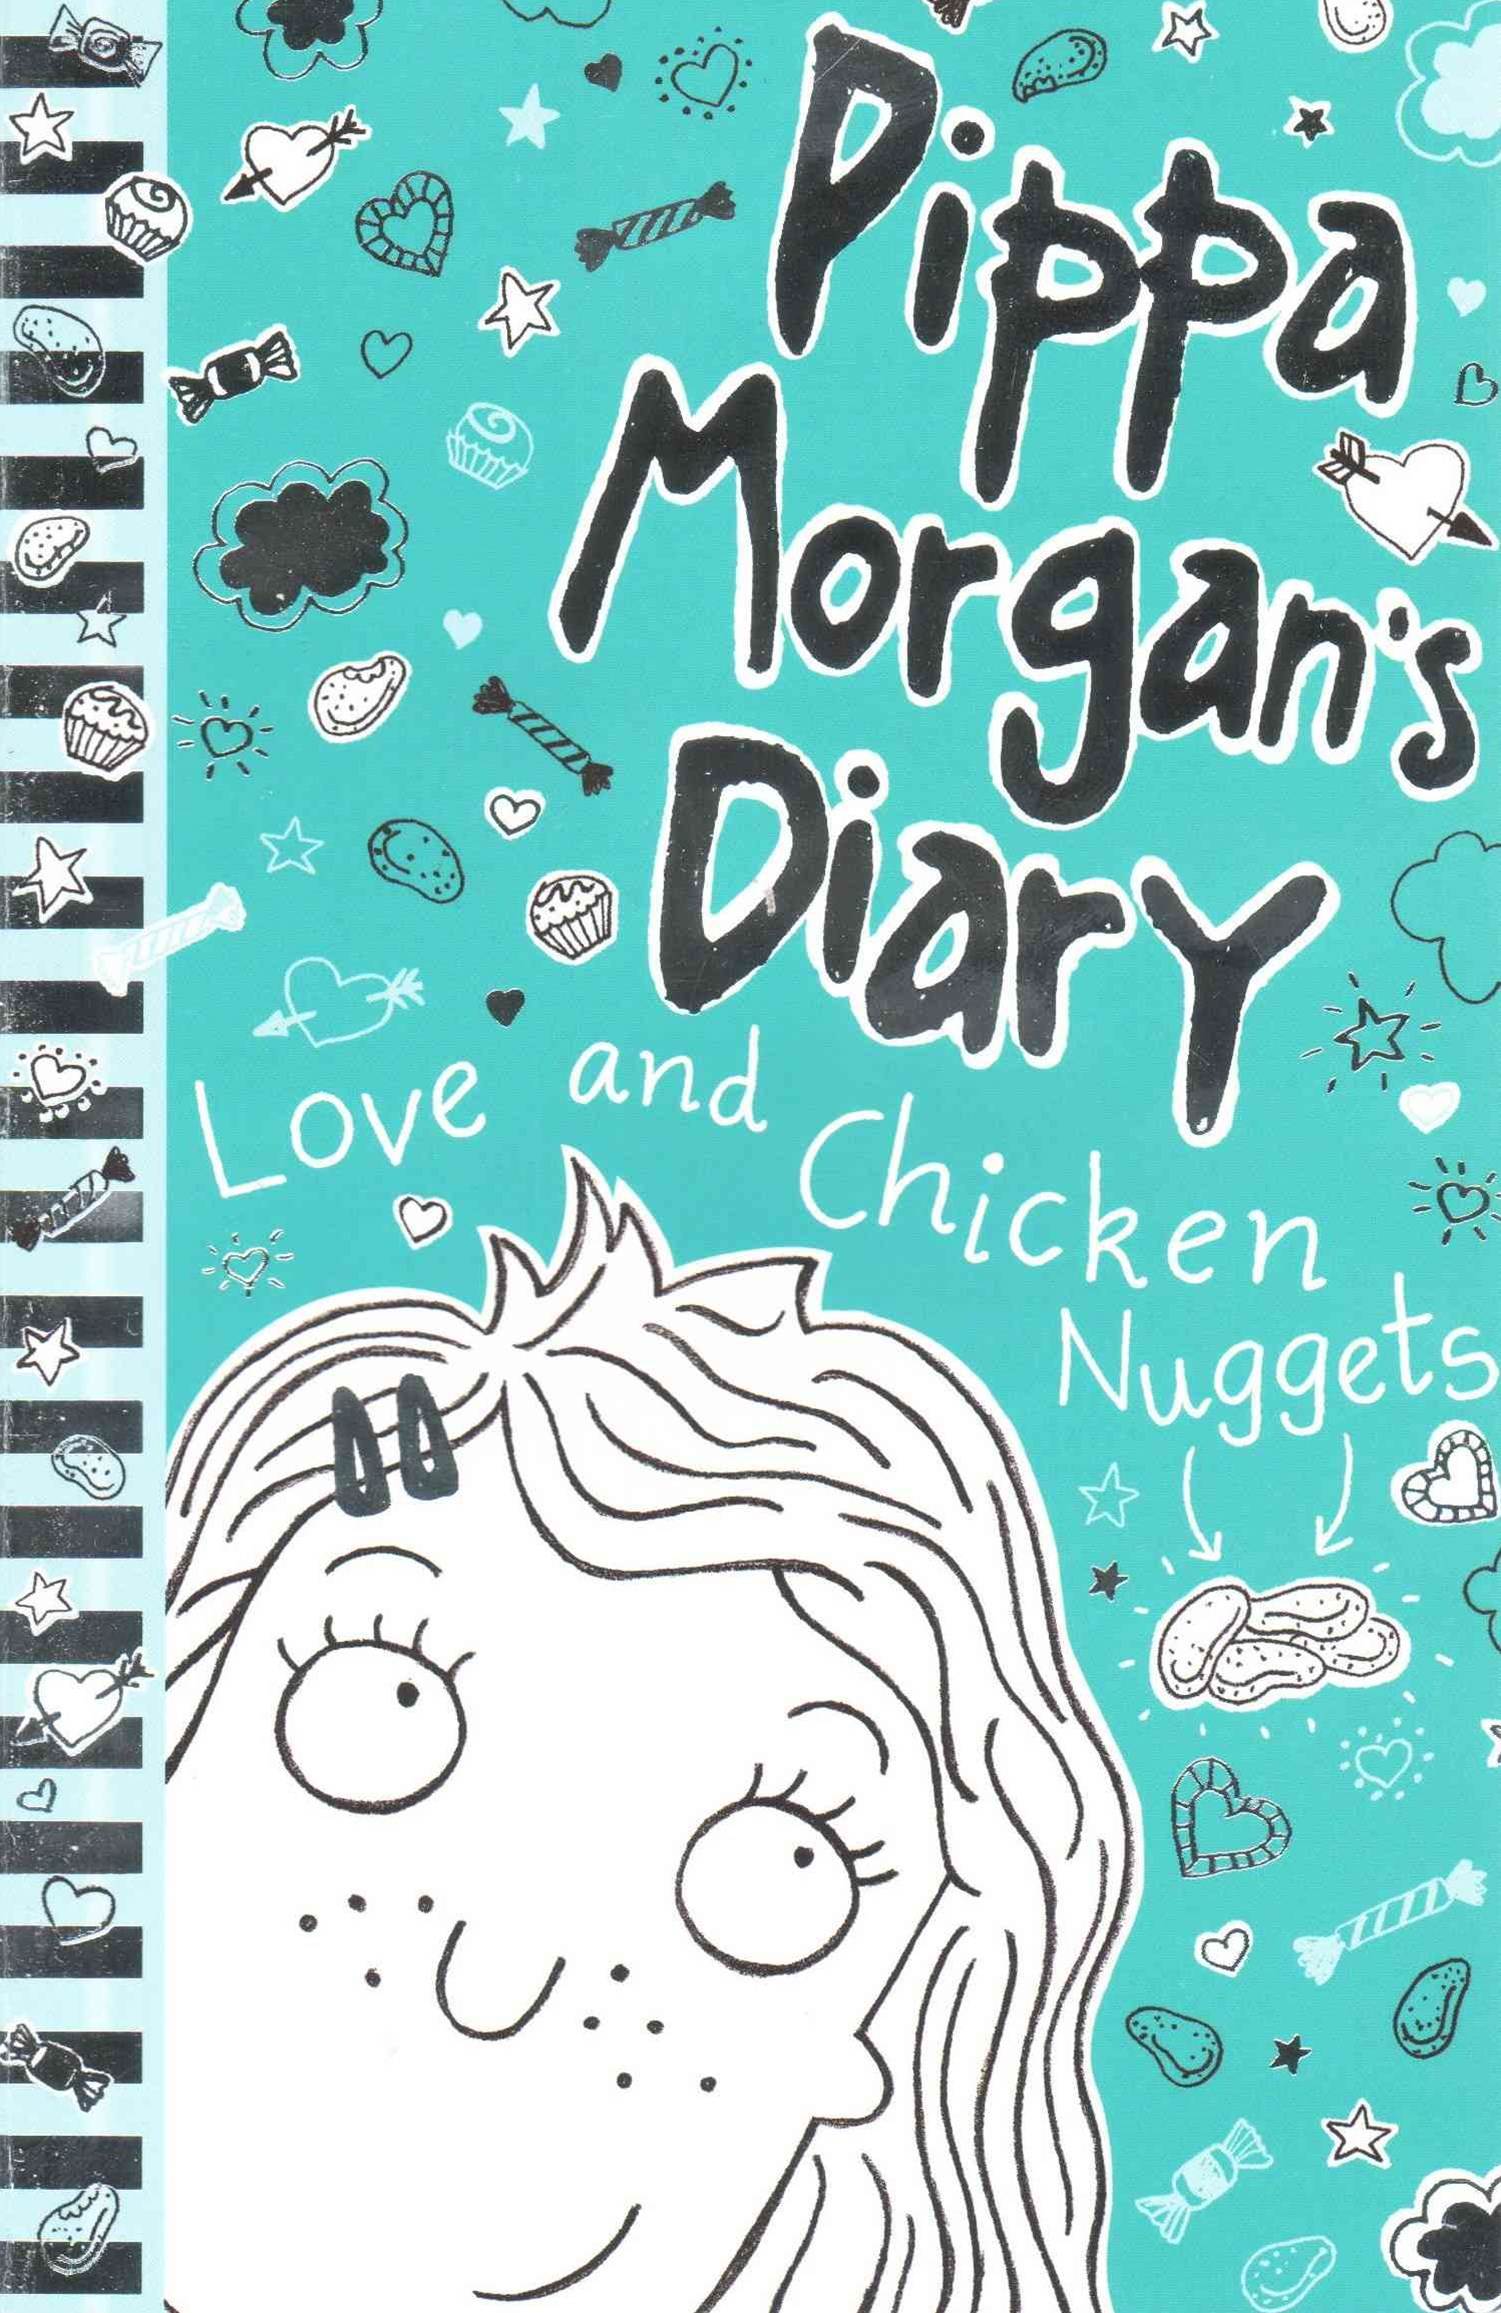 Pippa Morgan's Diary: #2 Love and Chicken Nuggets